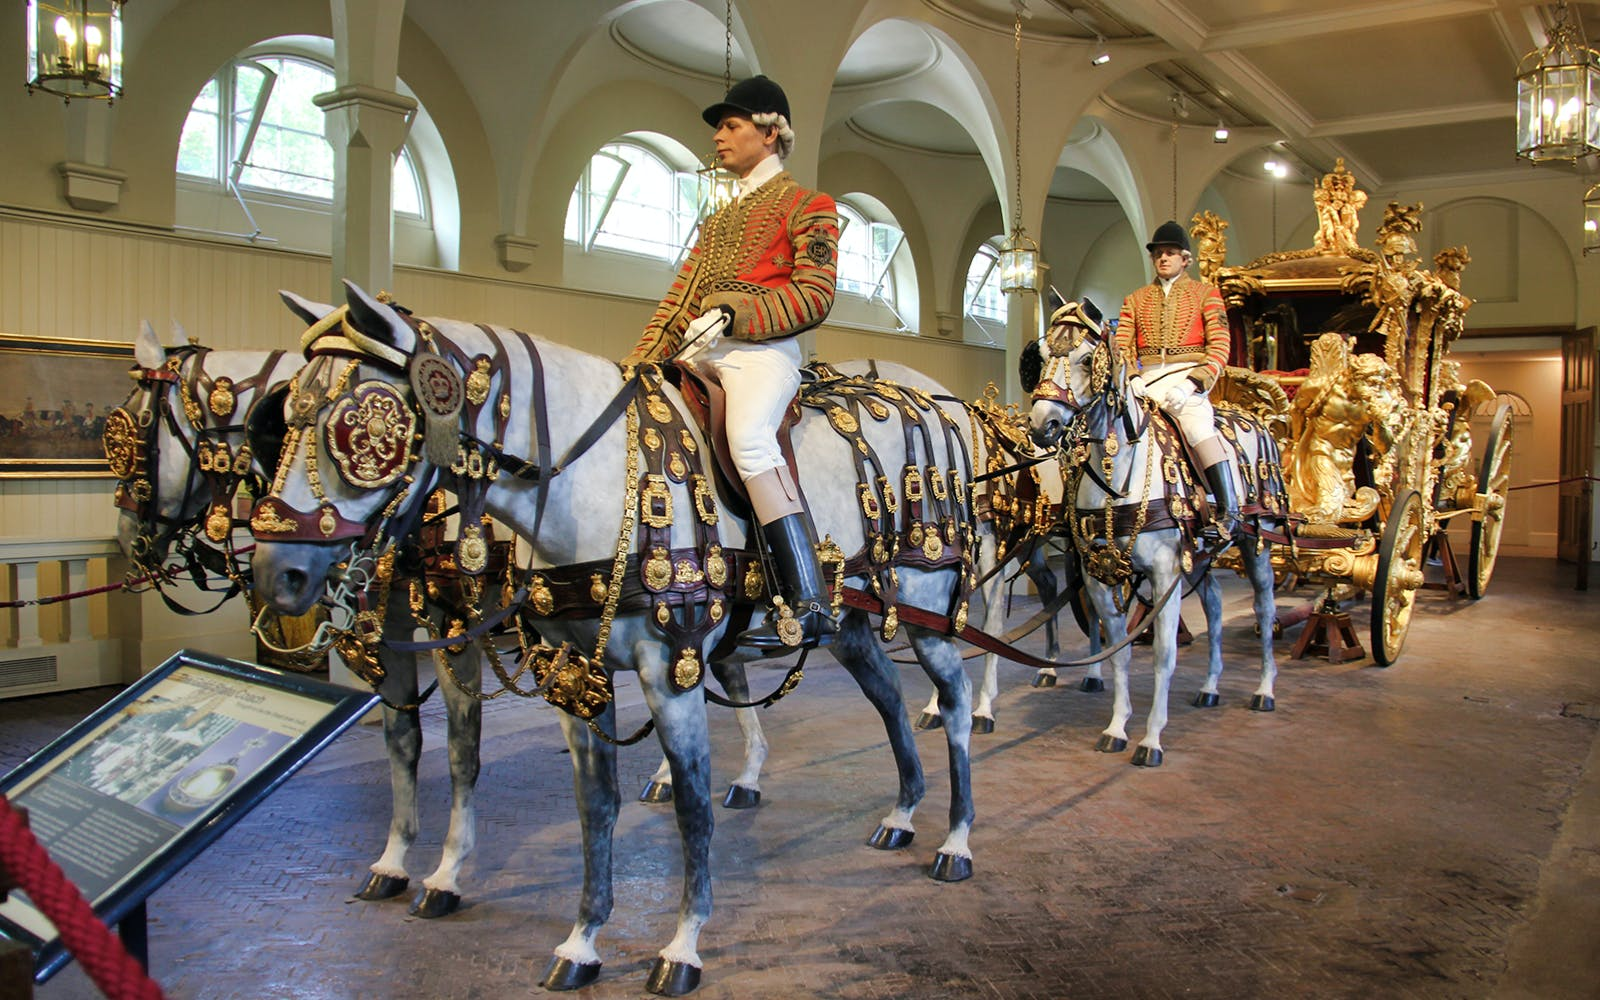 Entrance Tickets to The Royal Mews of the Buckingham Palace